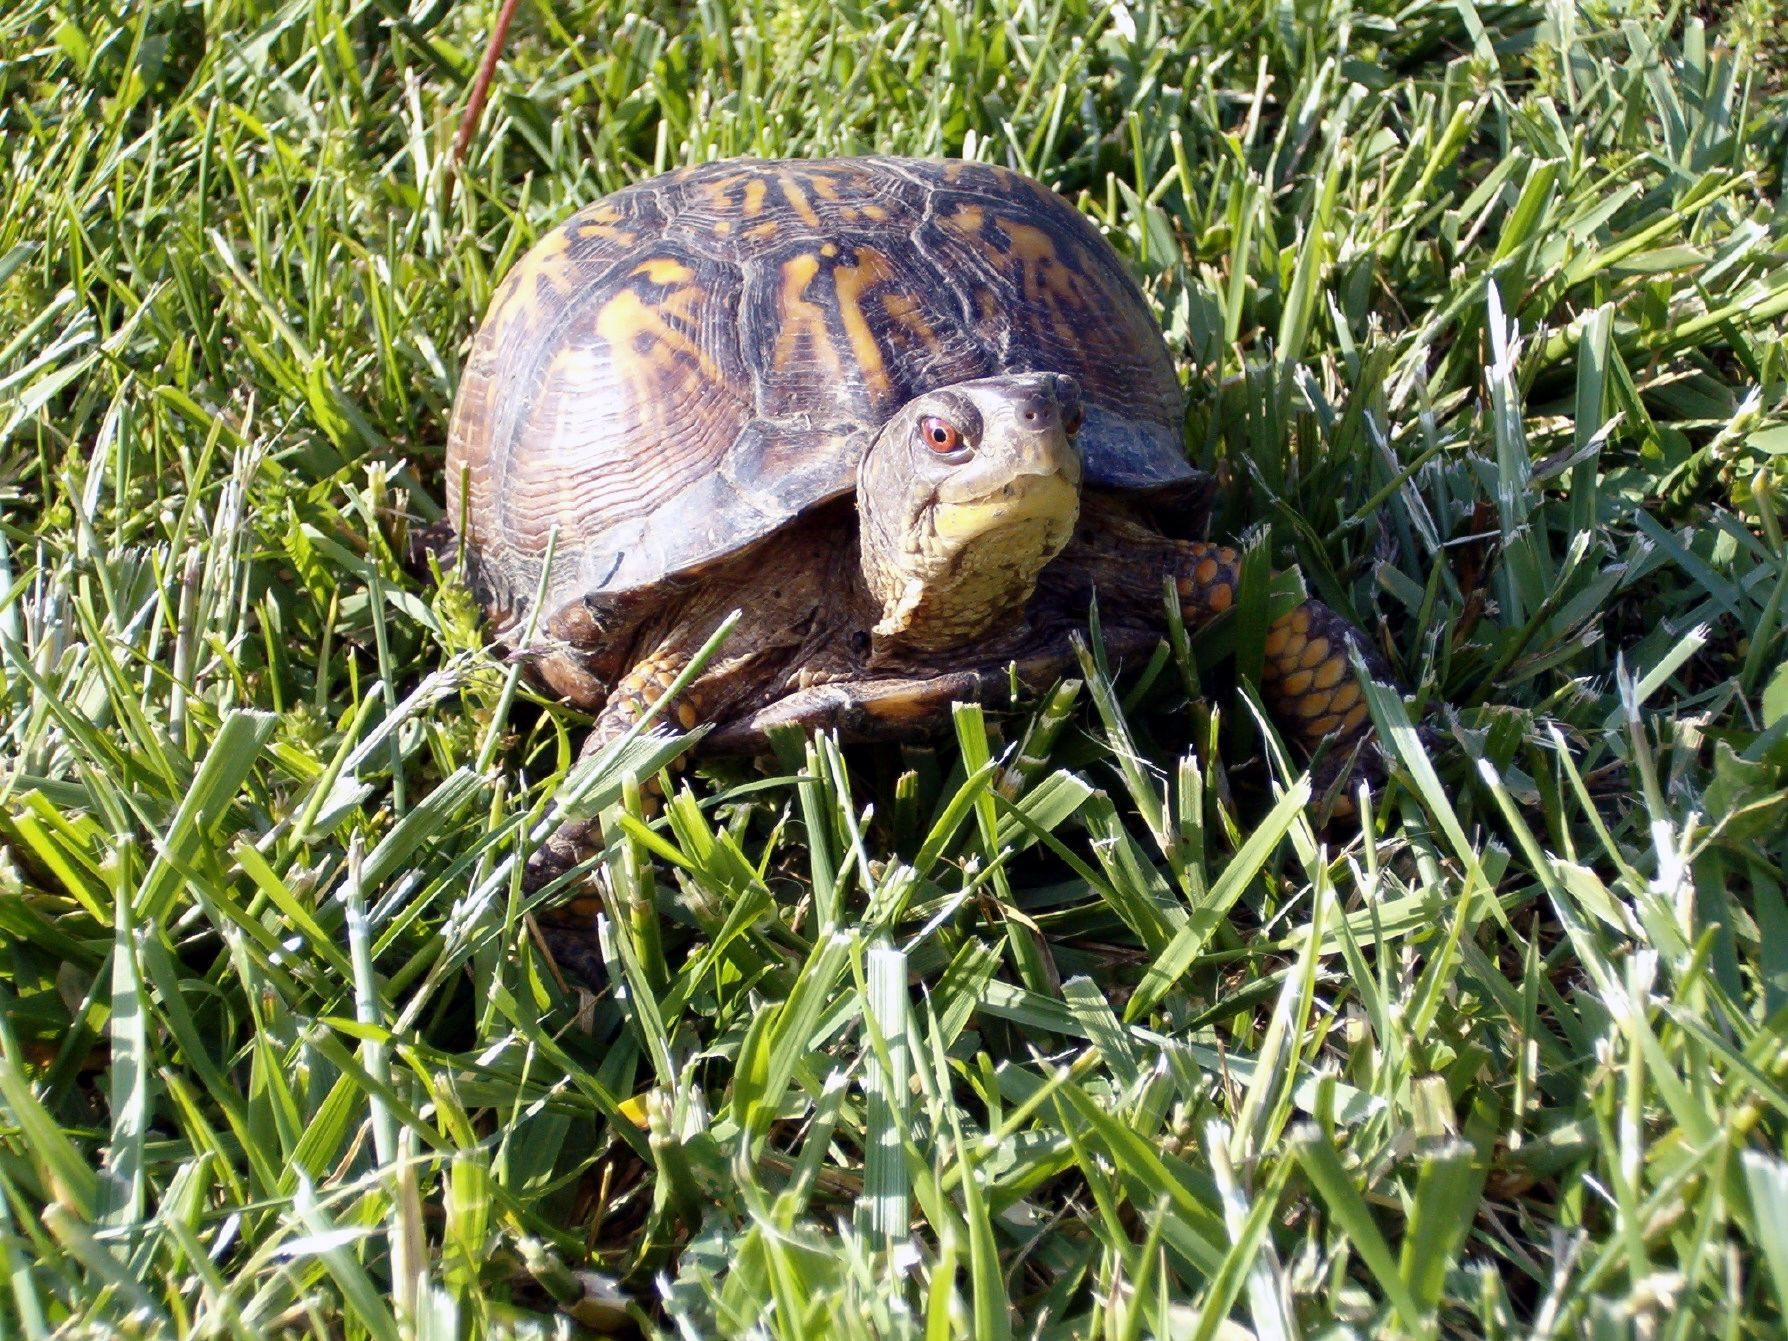 Reptile Facts: My Turtle Tale